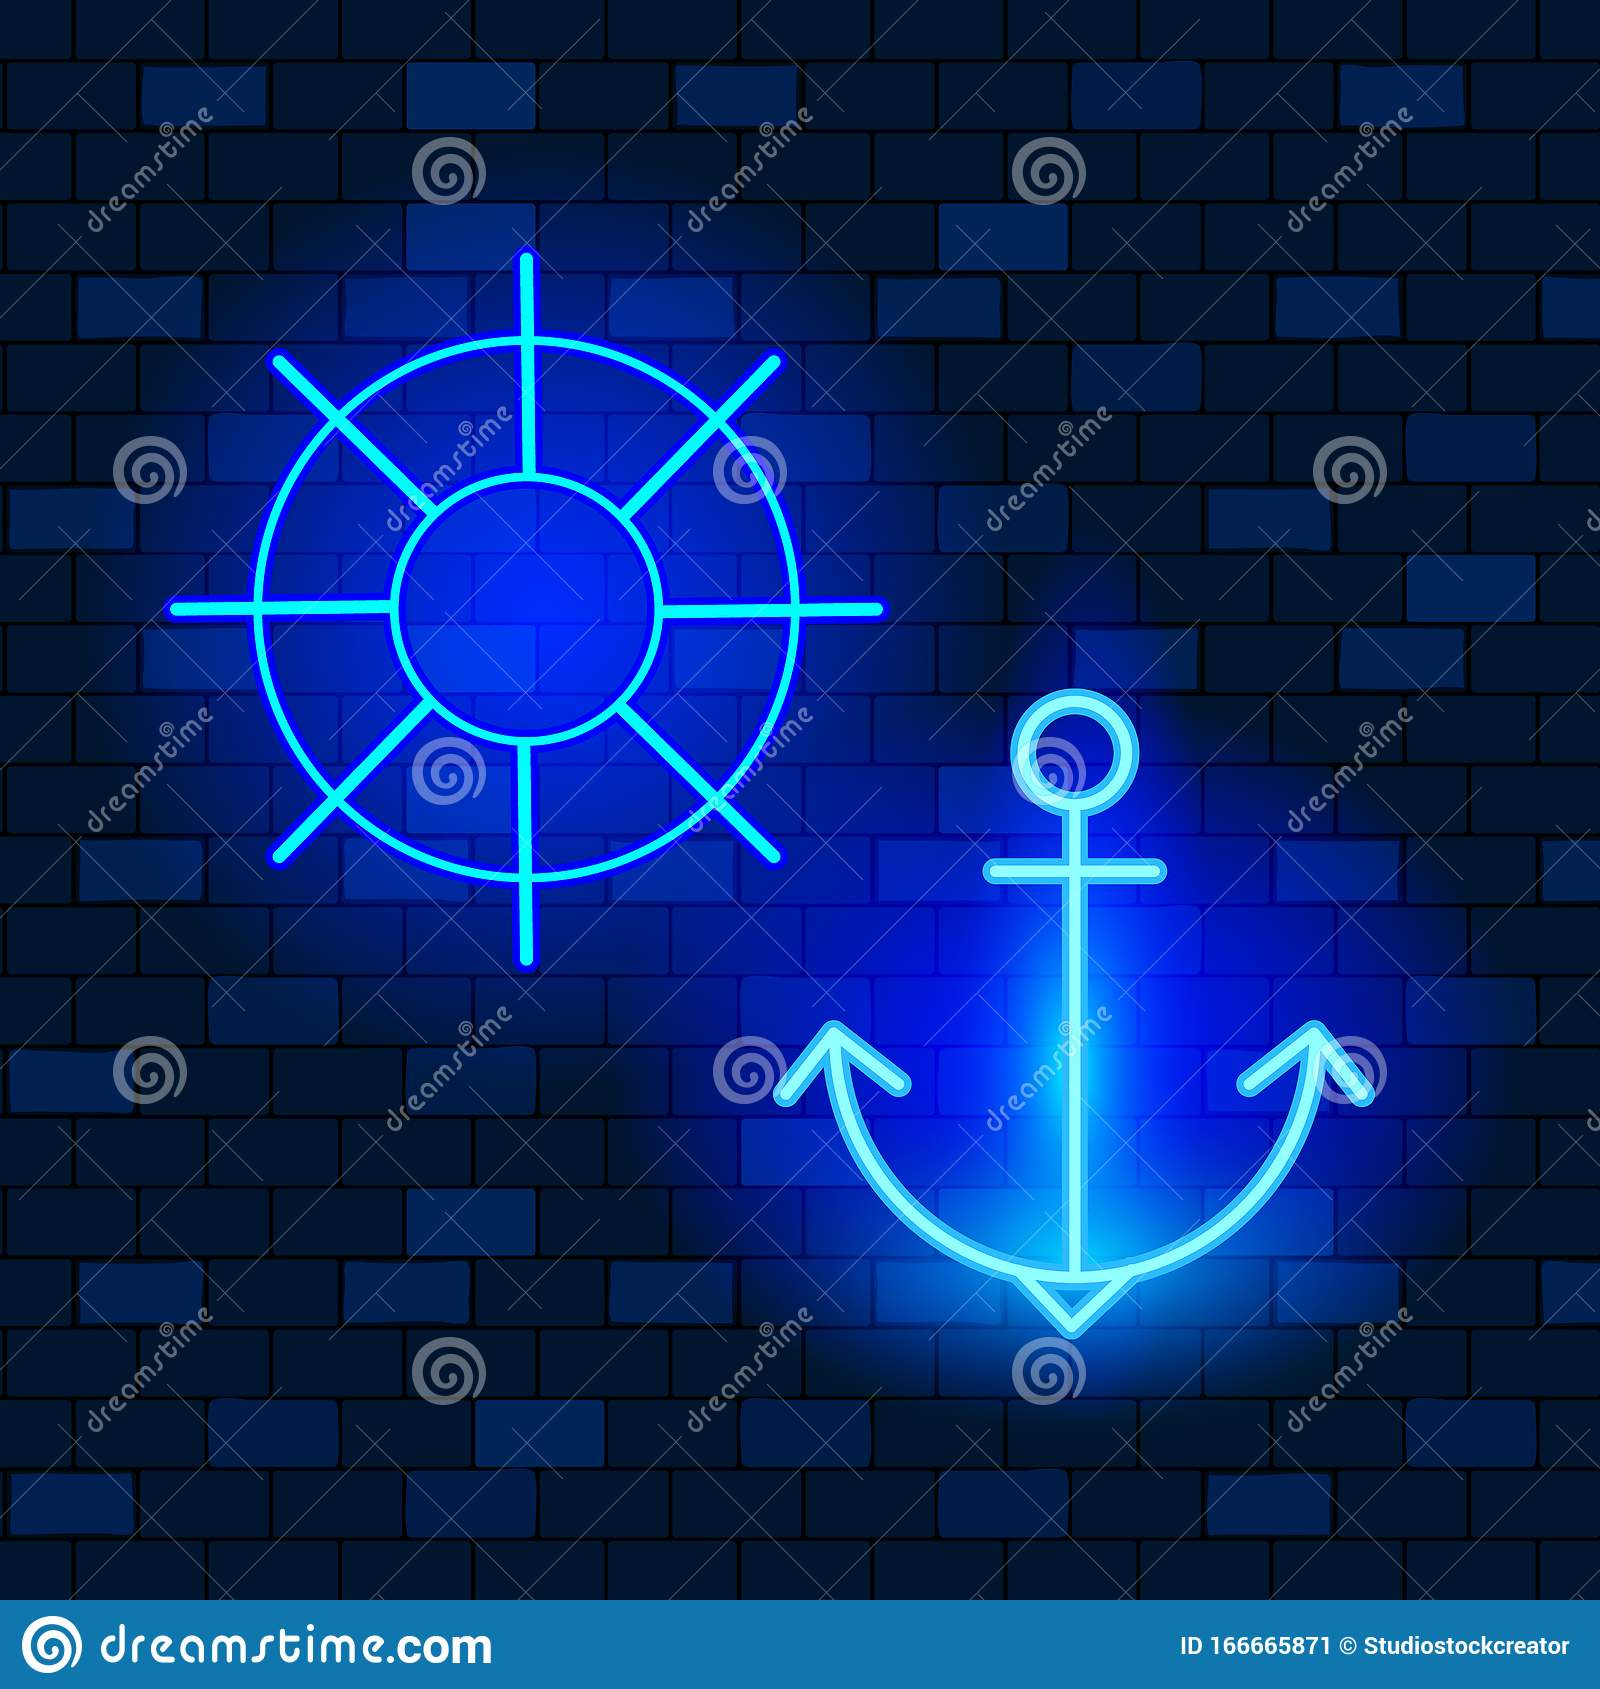 vip neon icons concept. neon anchor and helm icons on the